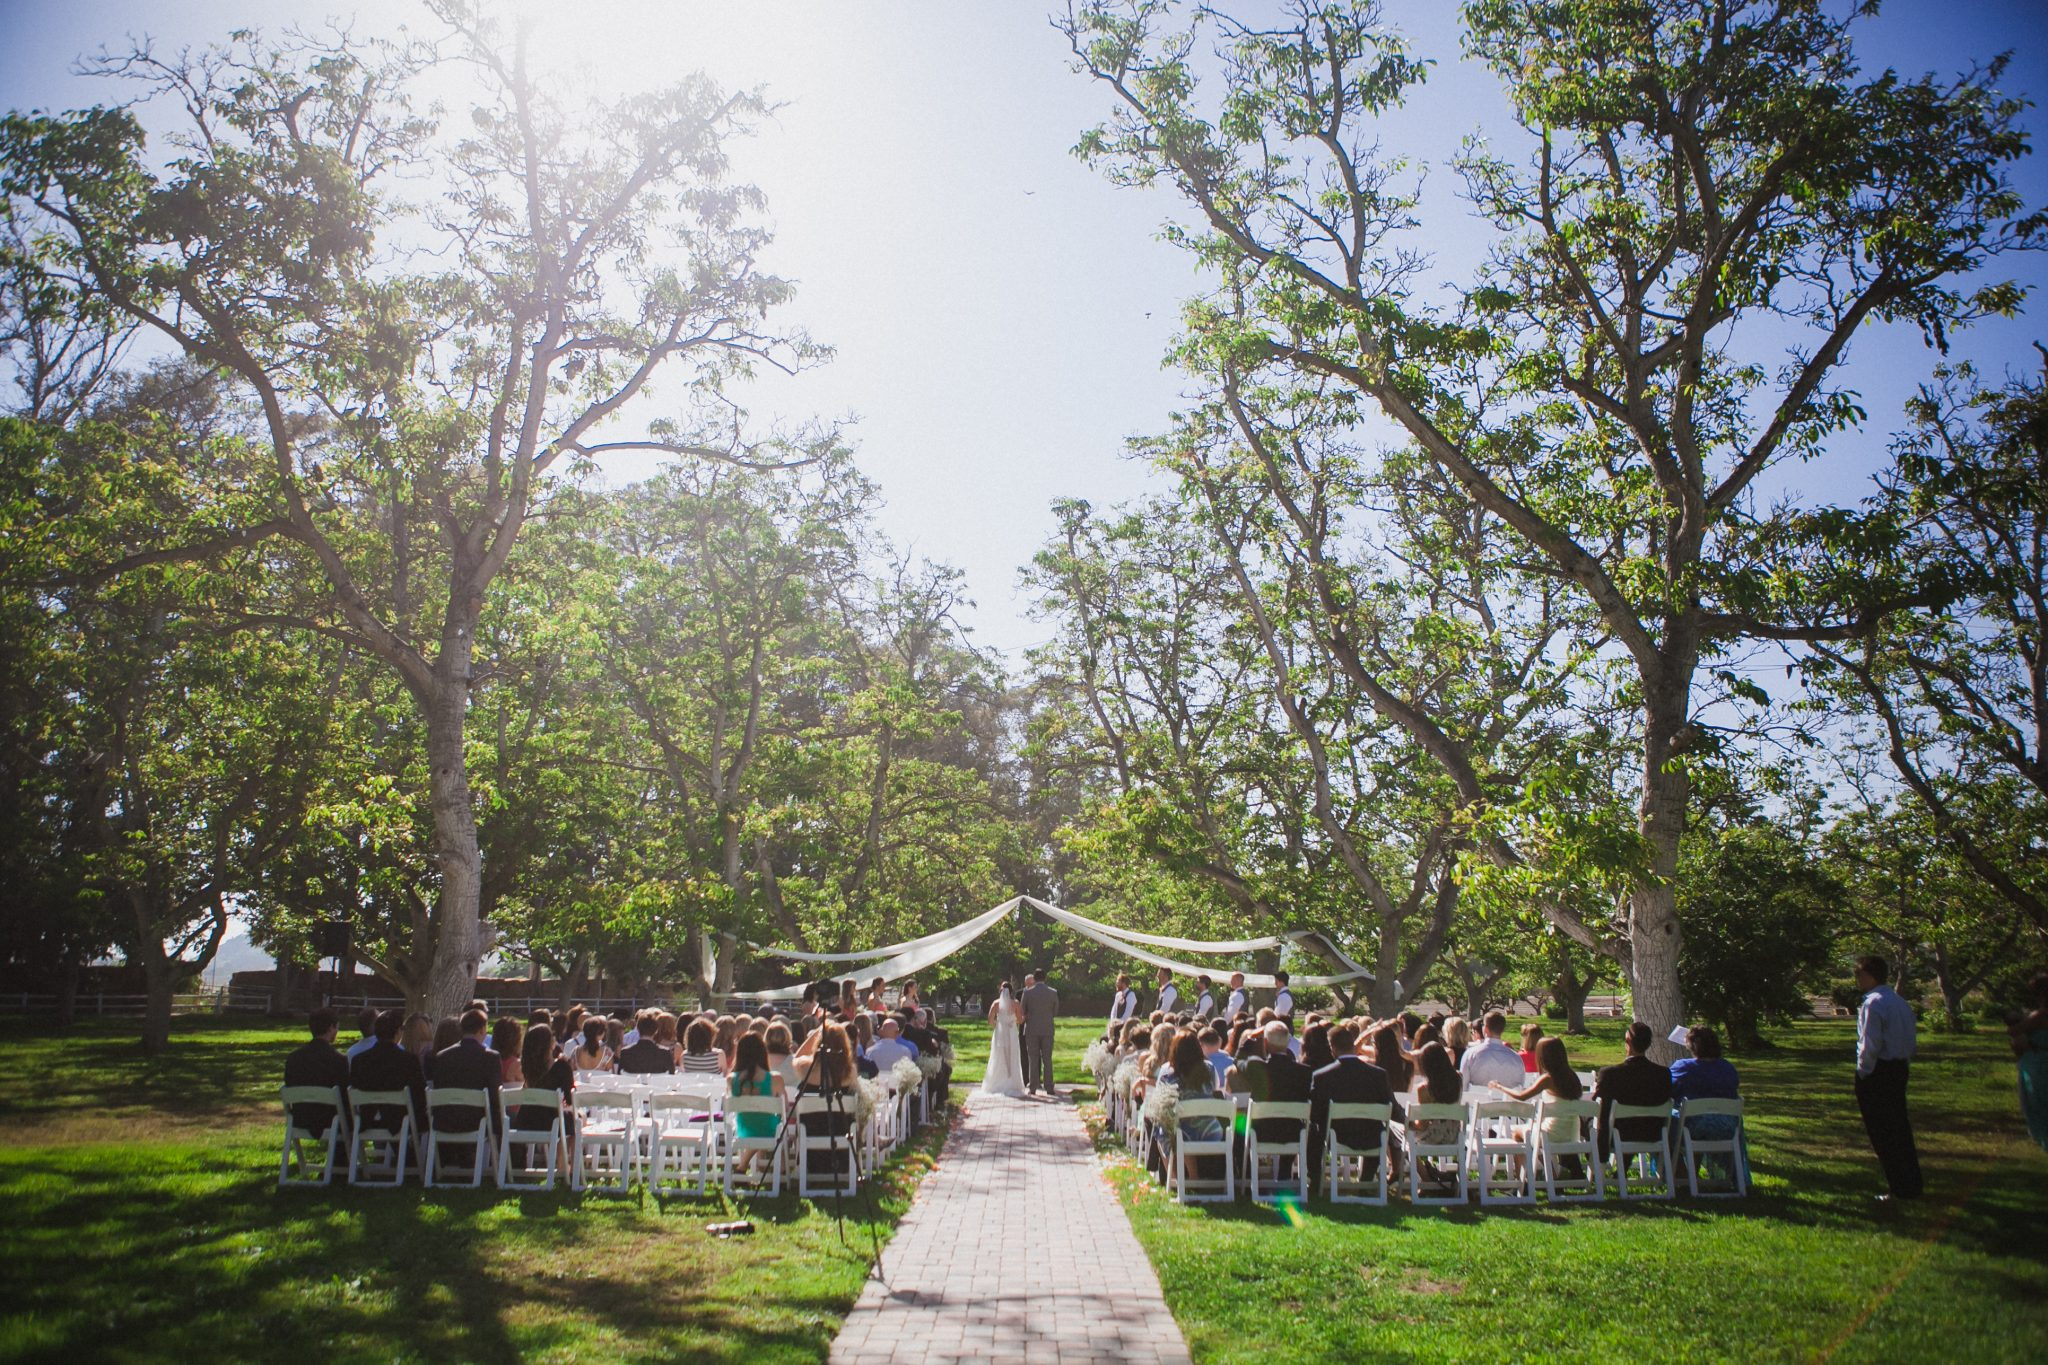 Wedding ceremony site at Walnut Grove in California